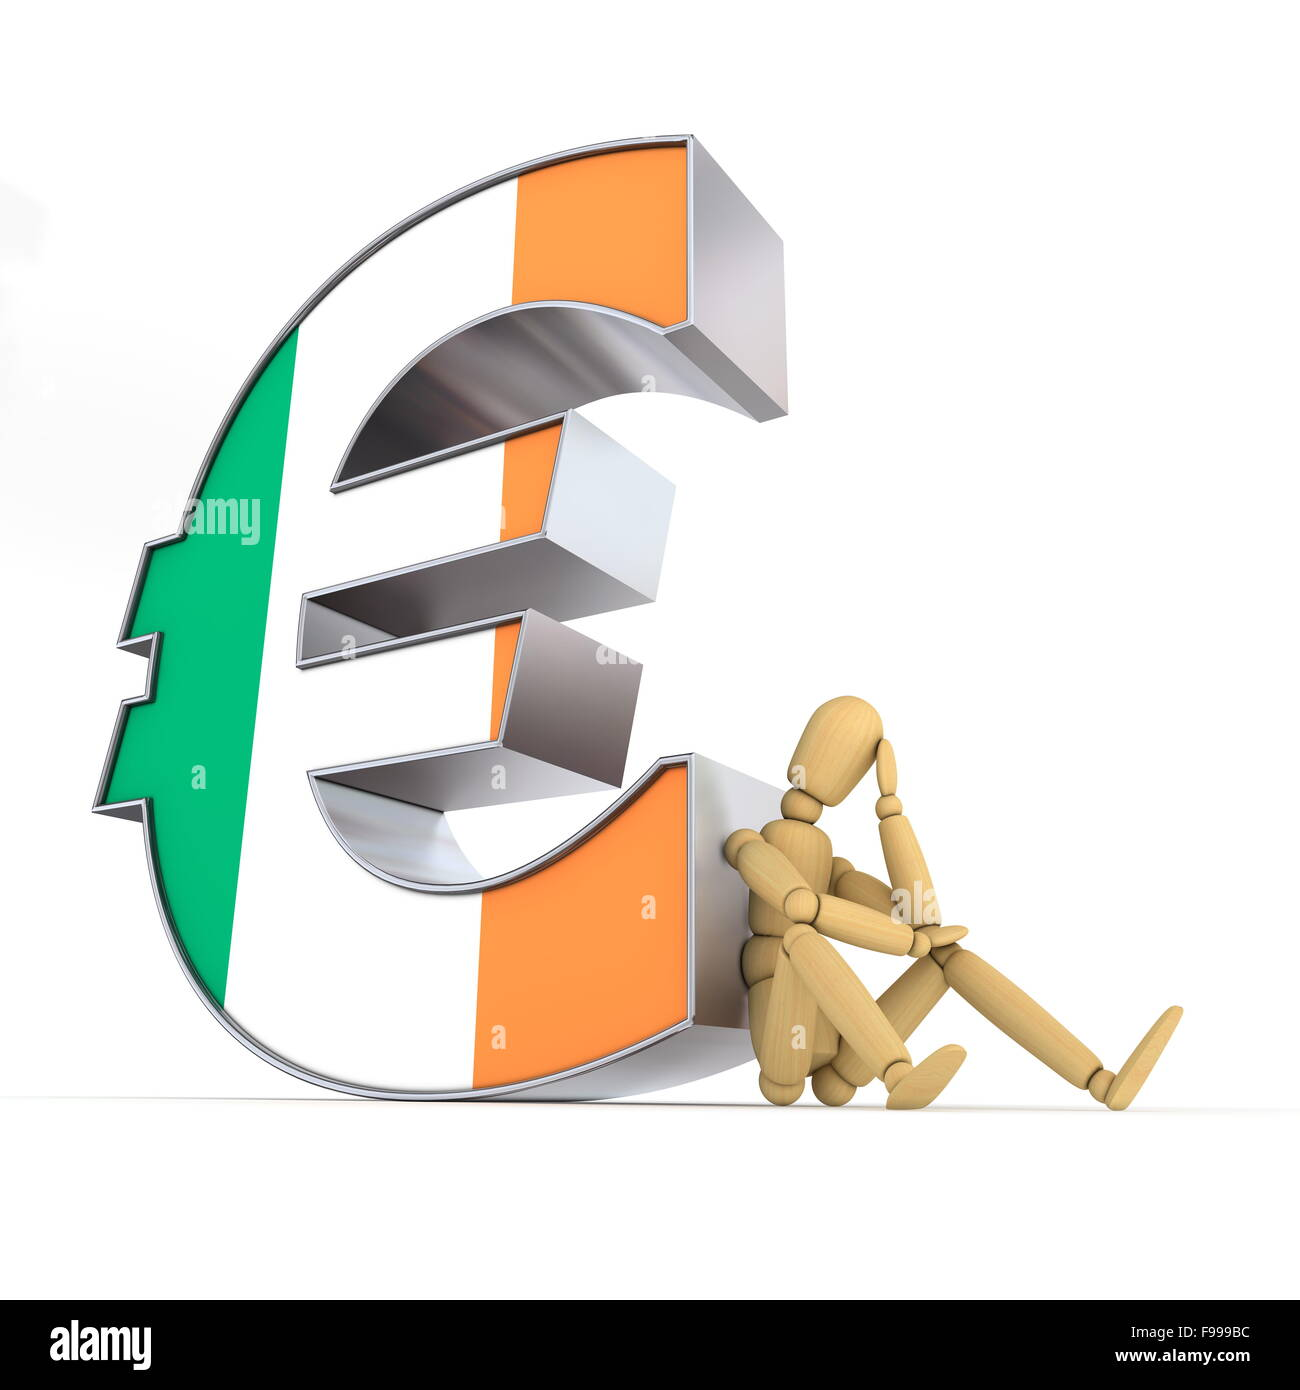 Doll Sitting At Irish Euro Sign - Stock Image